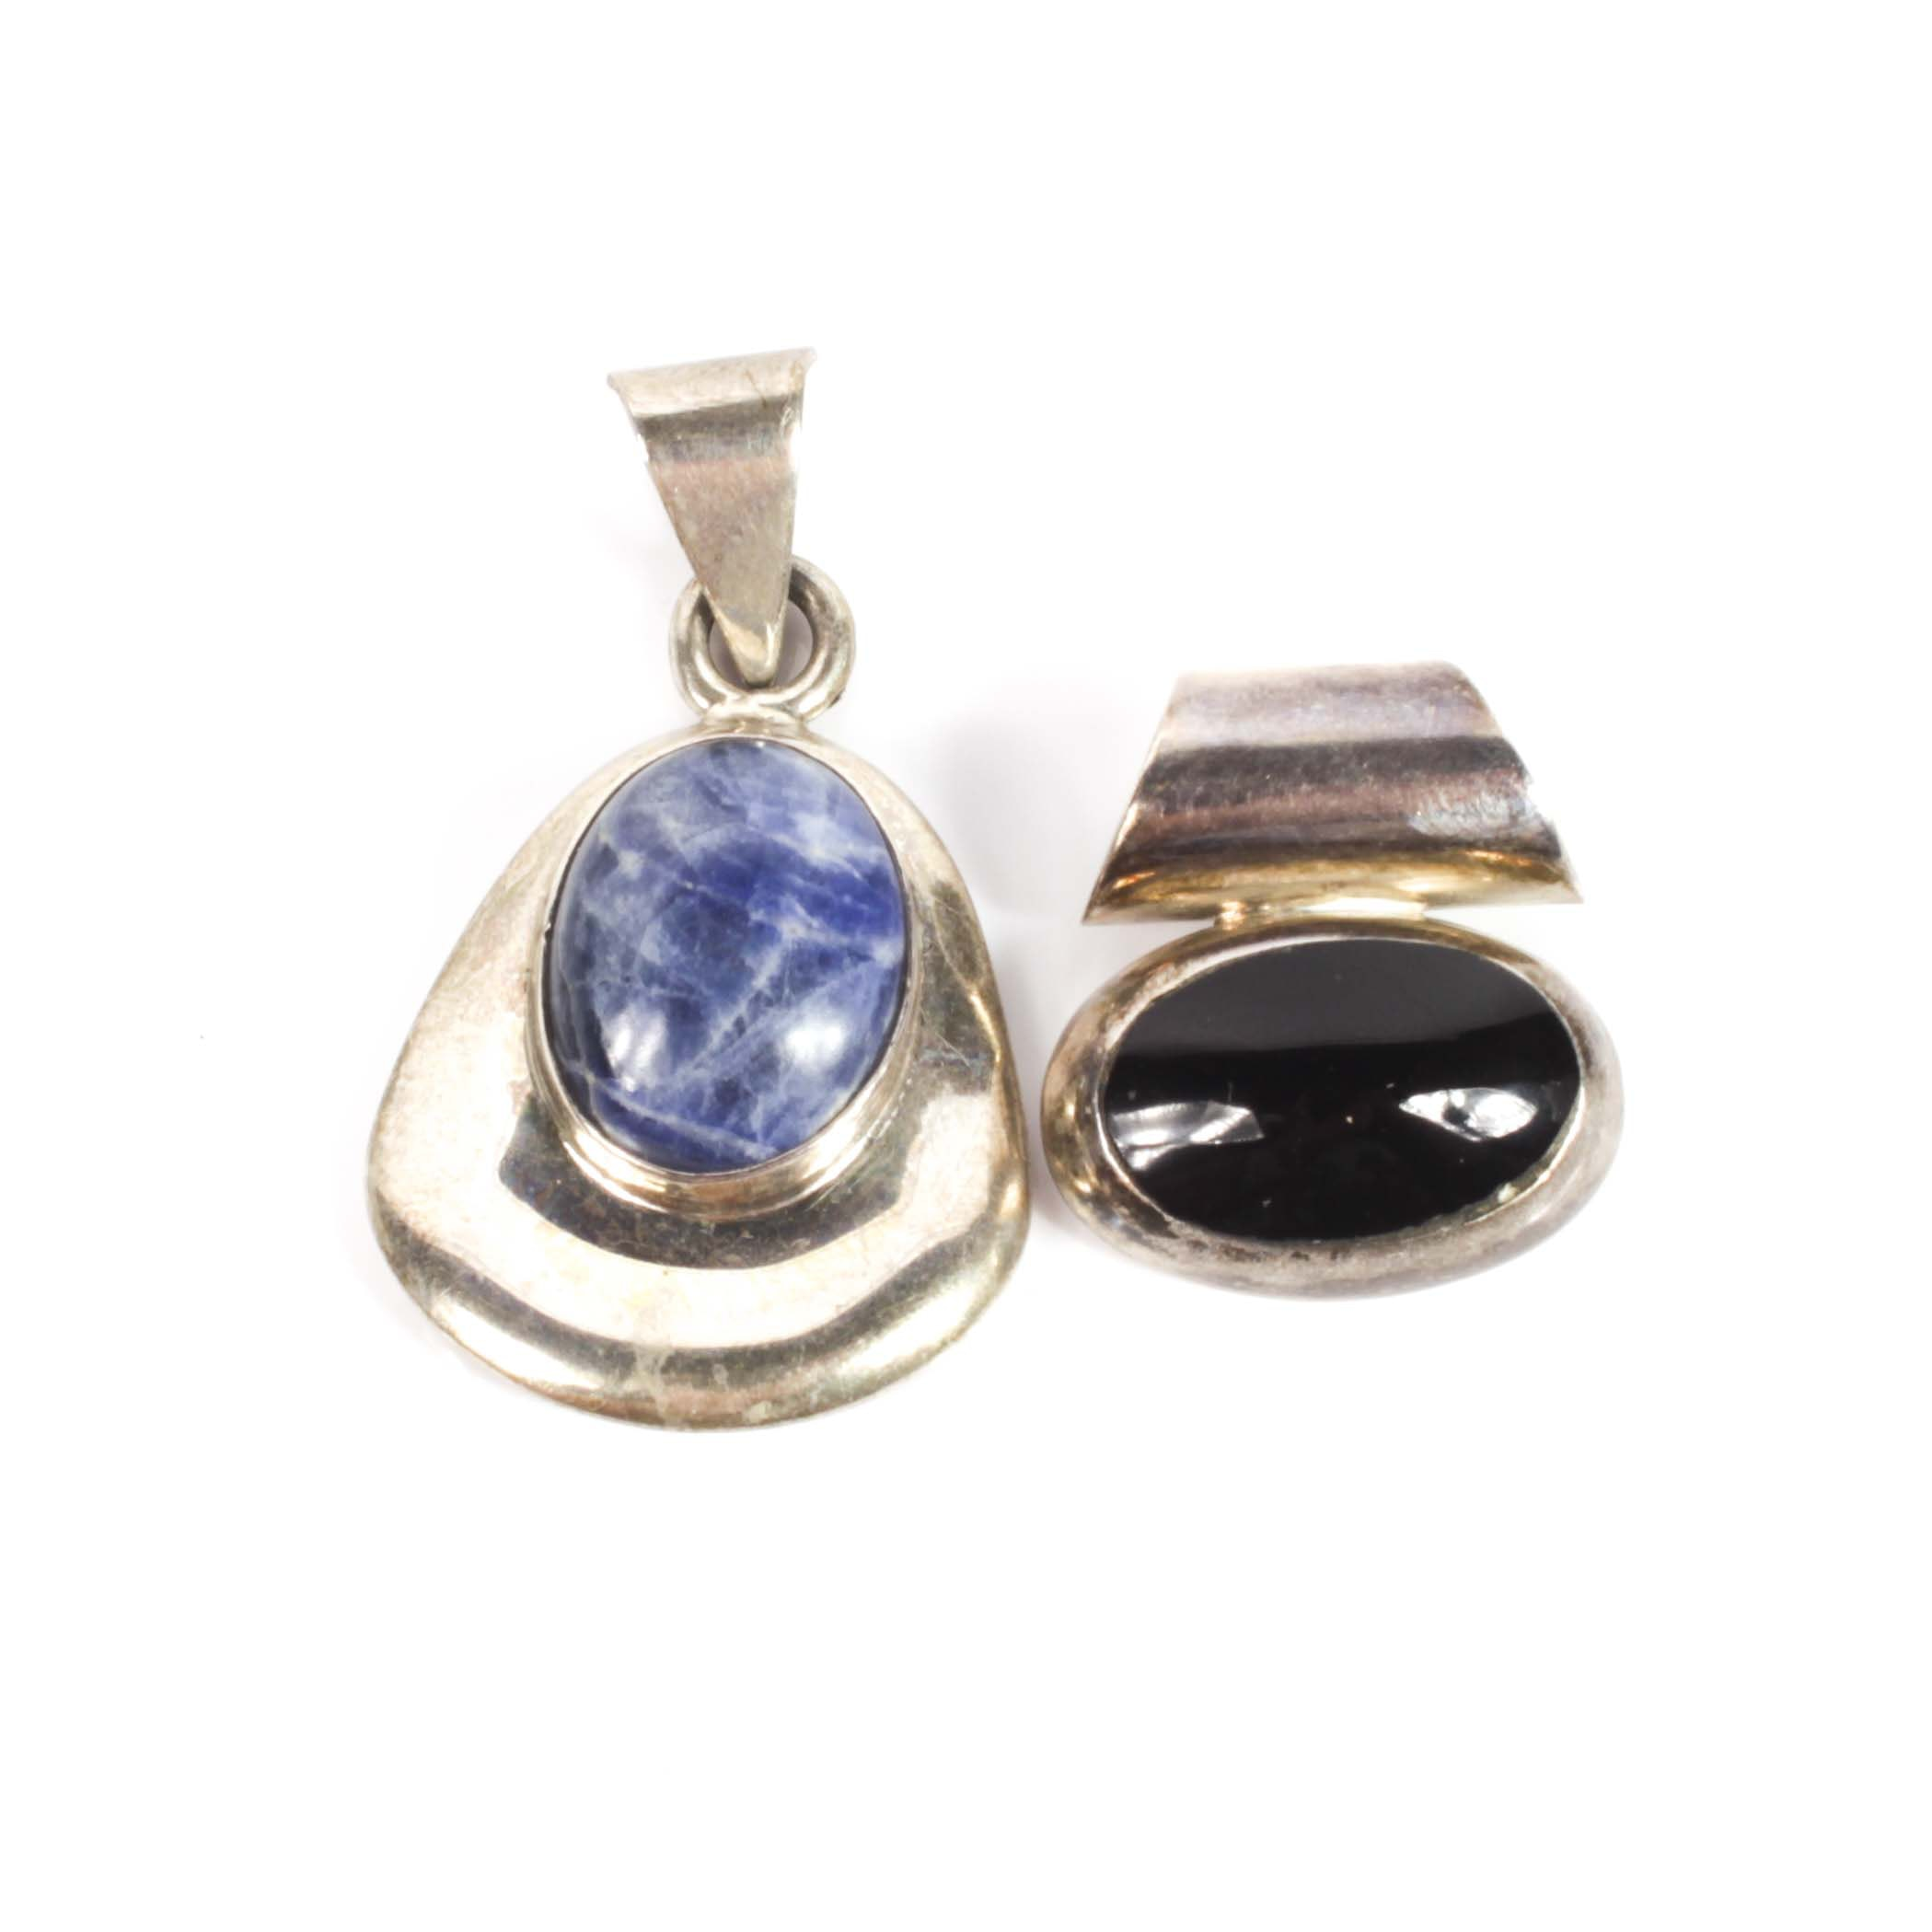 Sterling Silver and Black Onyx Pendant and Sterling Silver and Sodalite Pendant